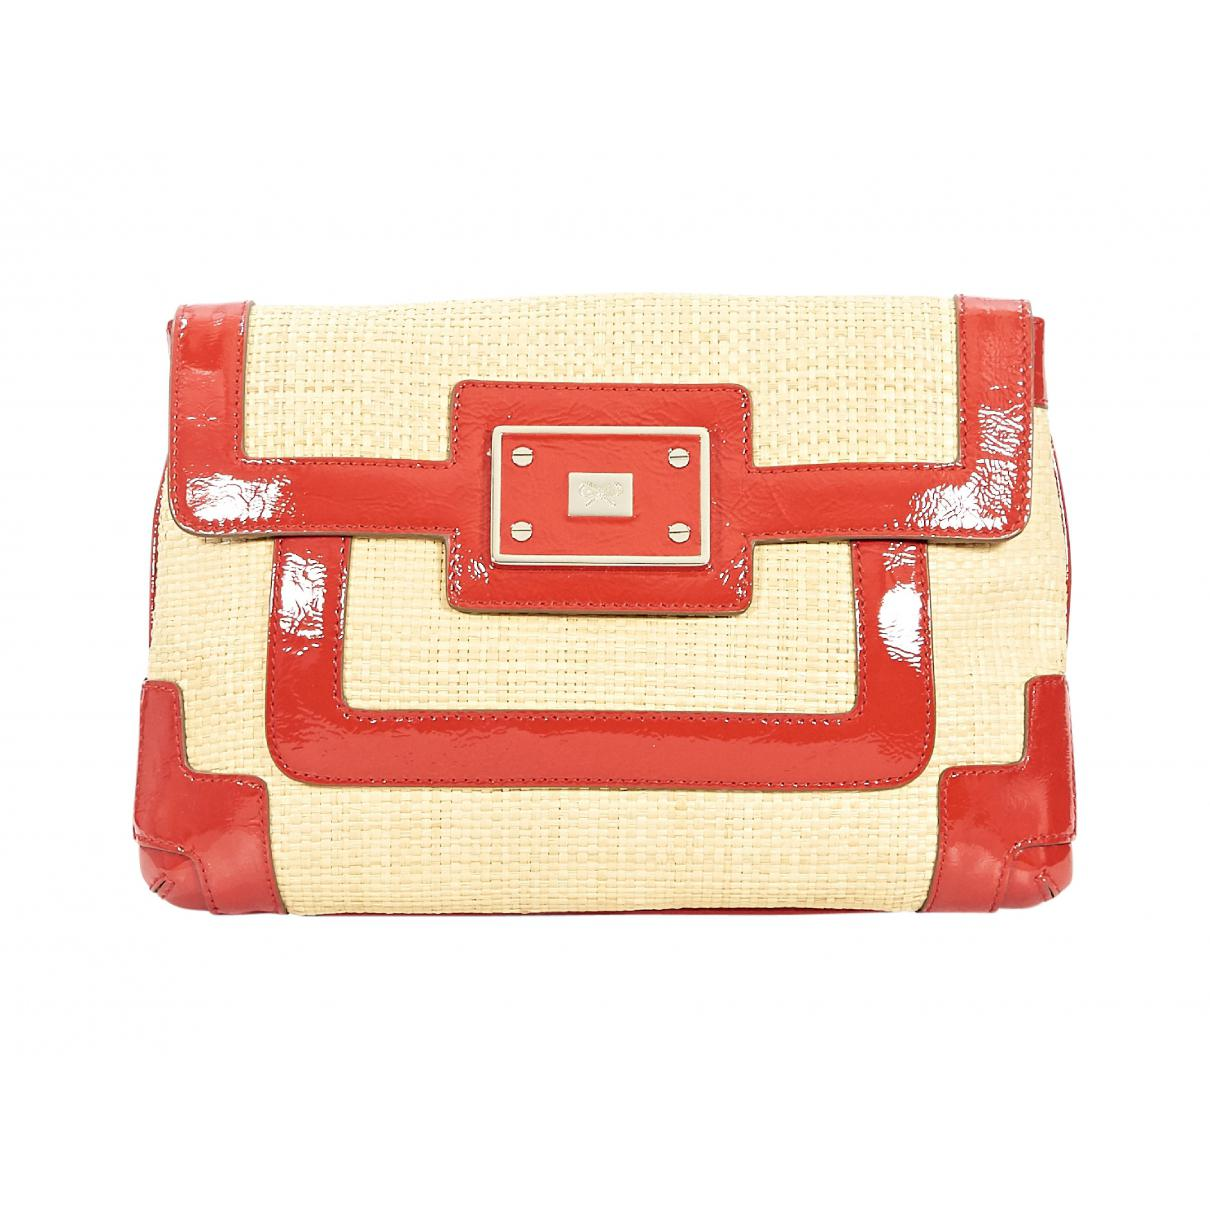 Anya Hindmarch Pre-owned - Cloth clutch bag 5pCgsWVO3